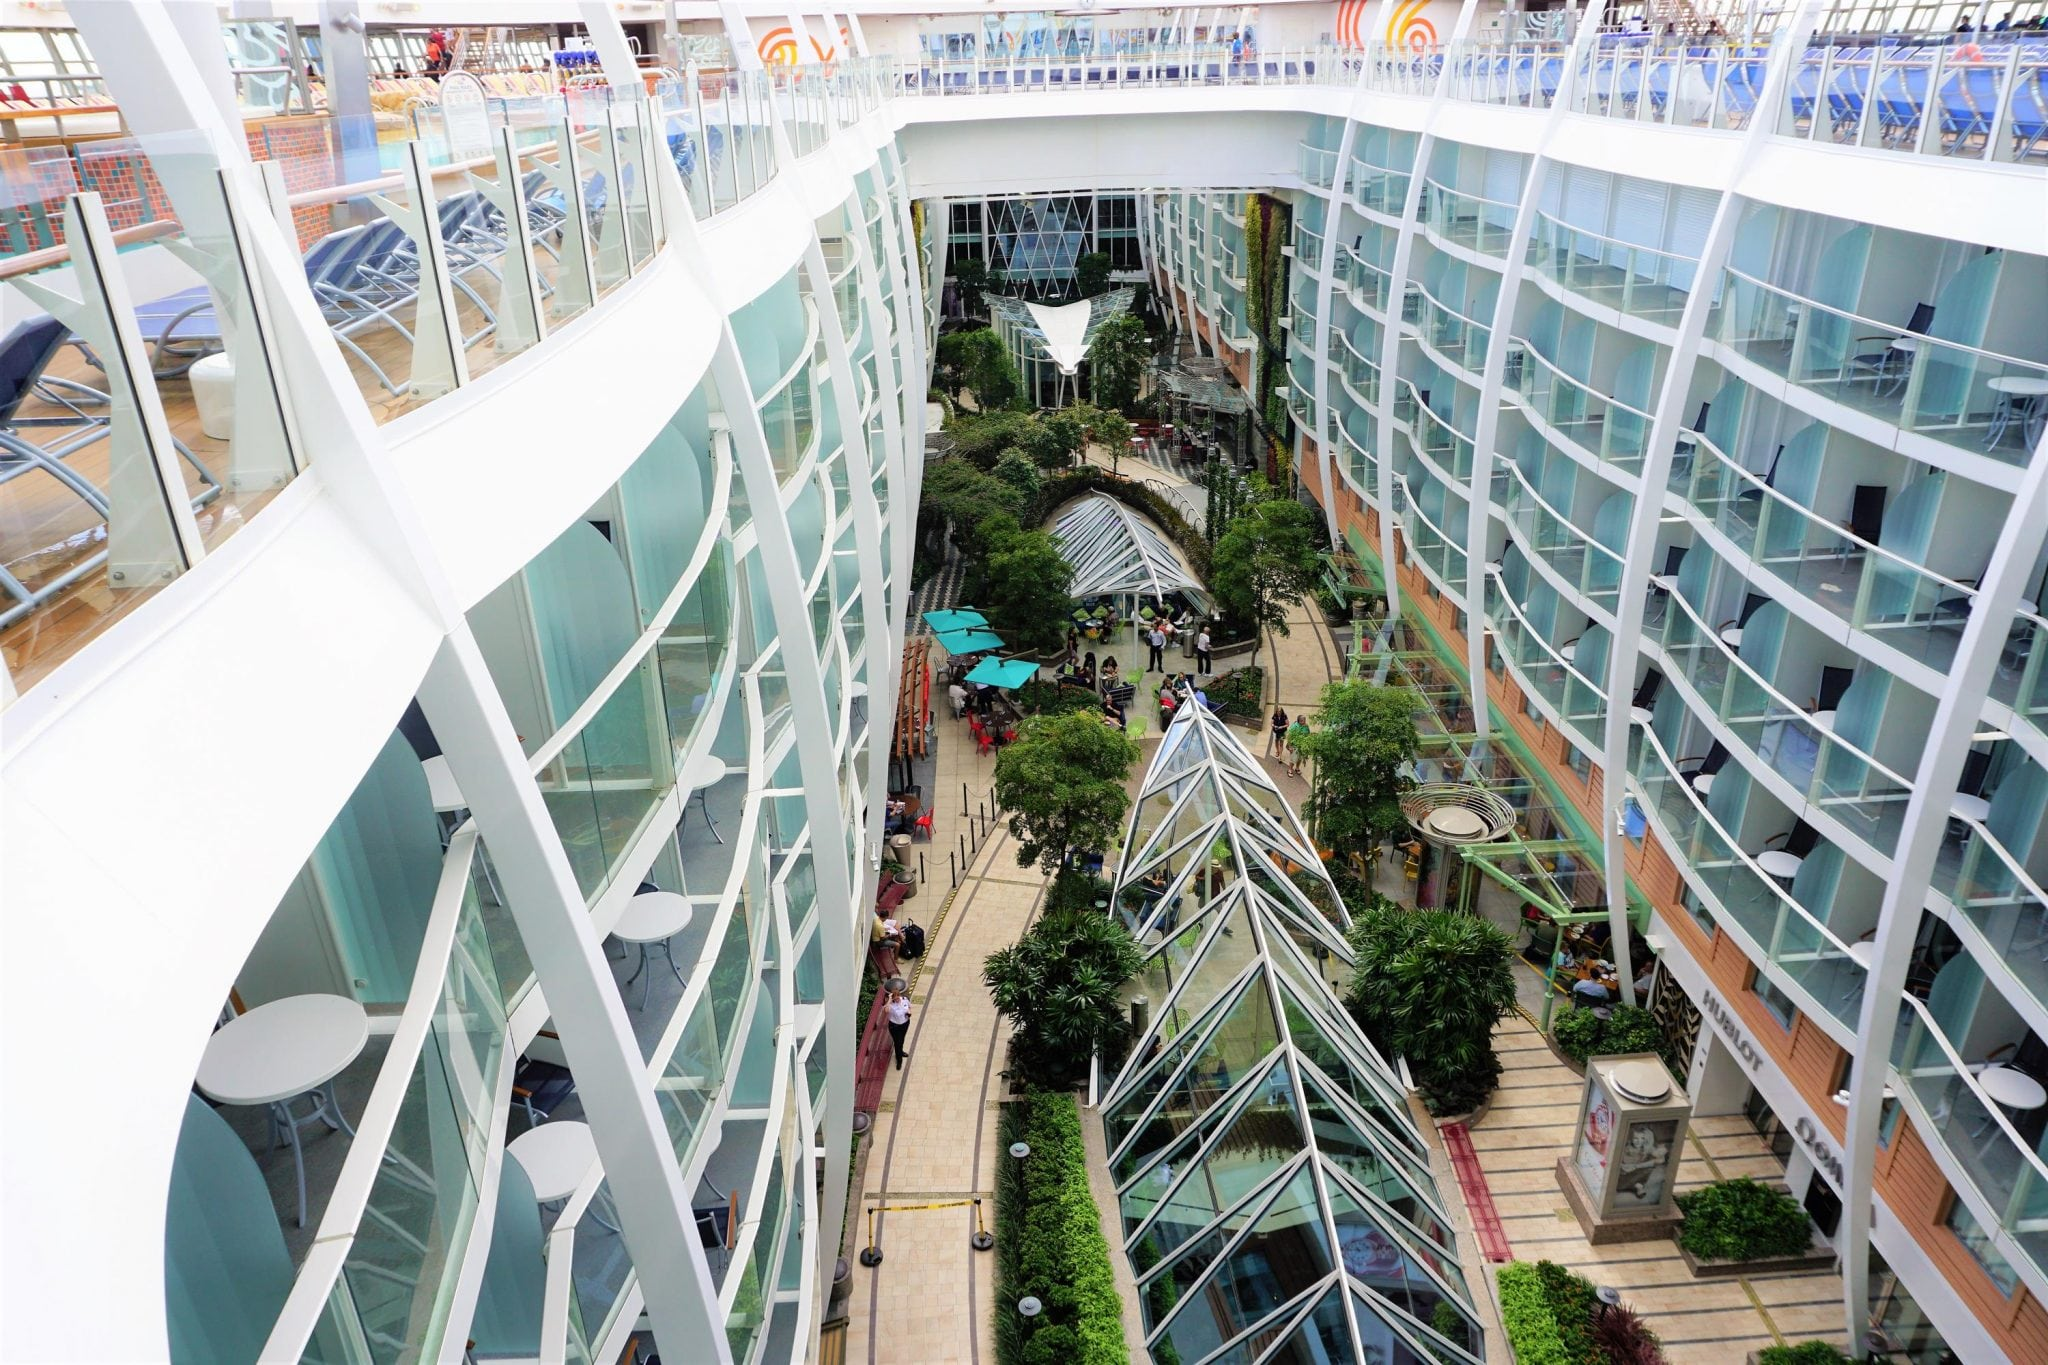 Harmony of the Seas Neighborhoods